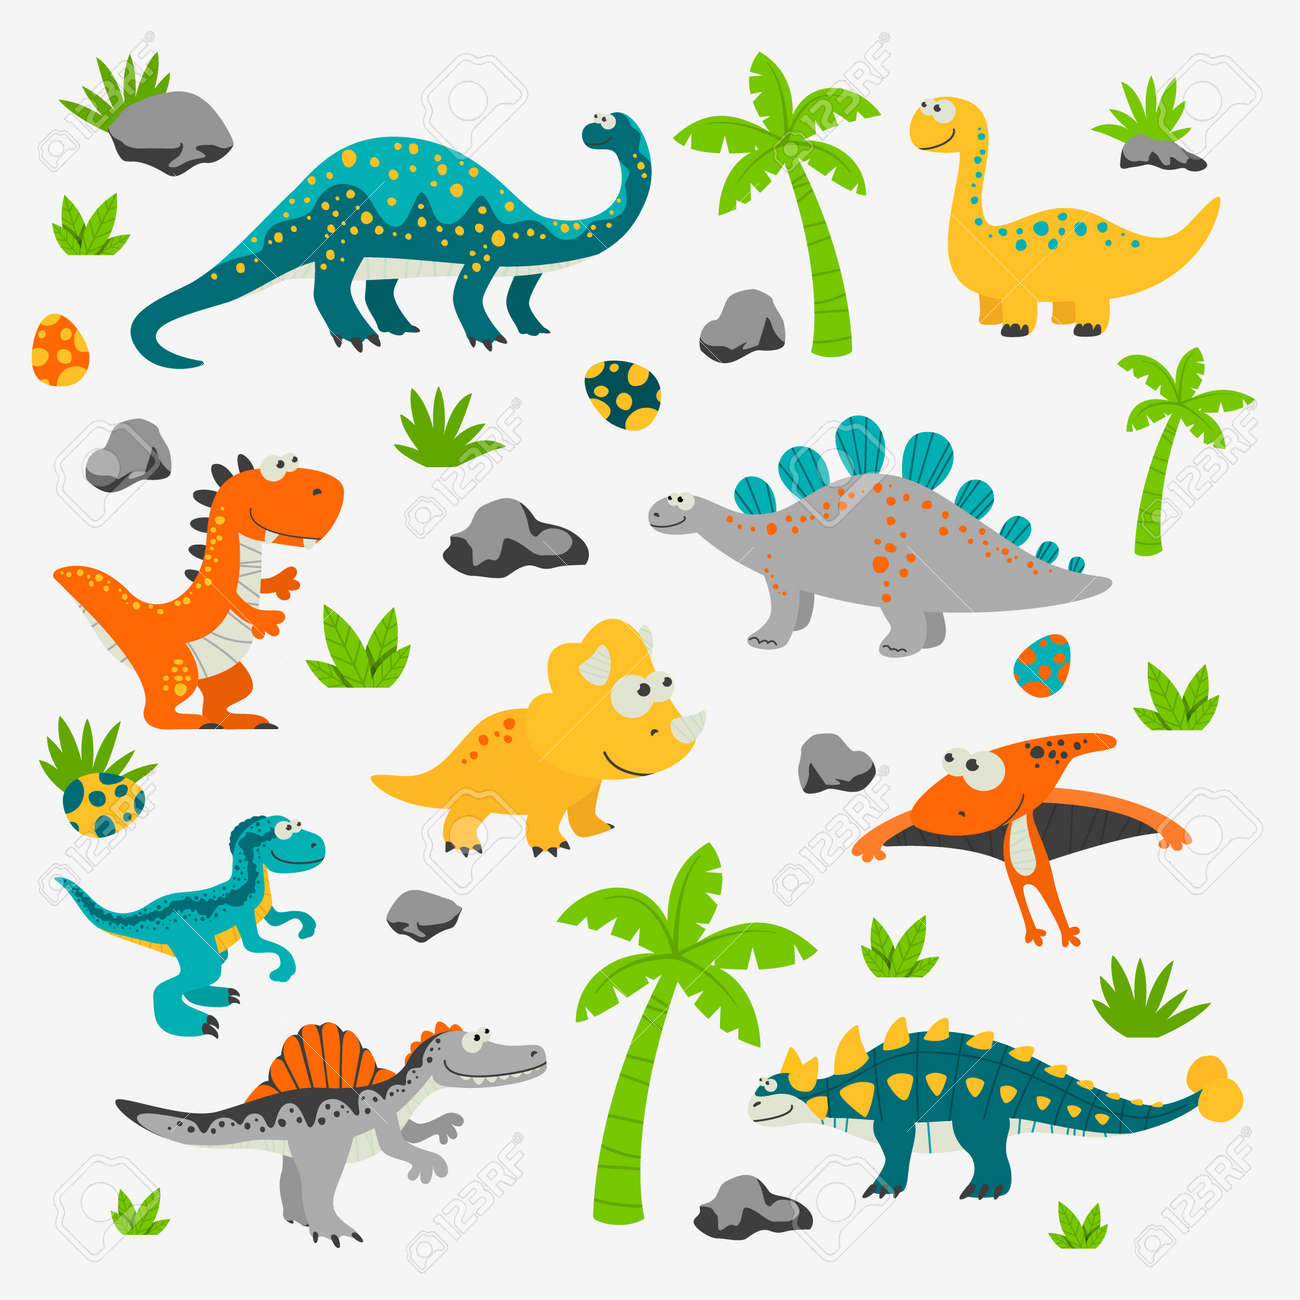 Vector Cute and Funny Flat Dinosaurs - 173639541